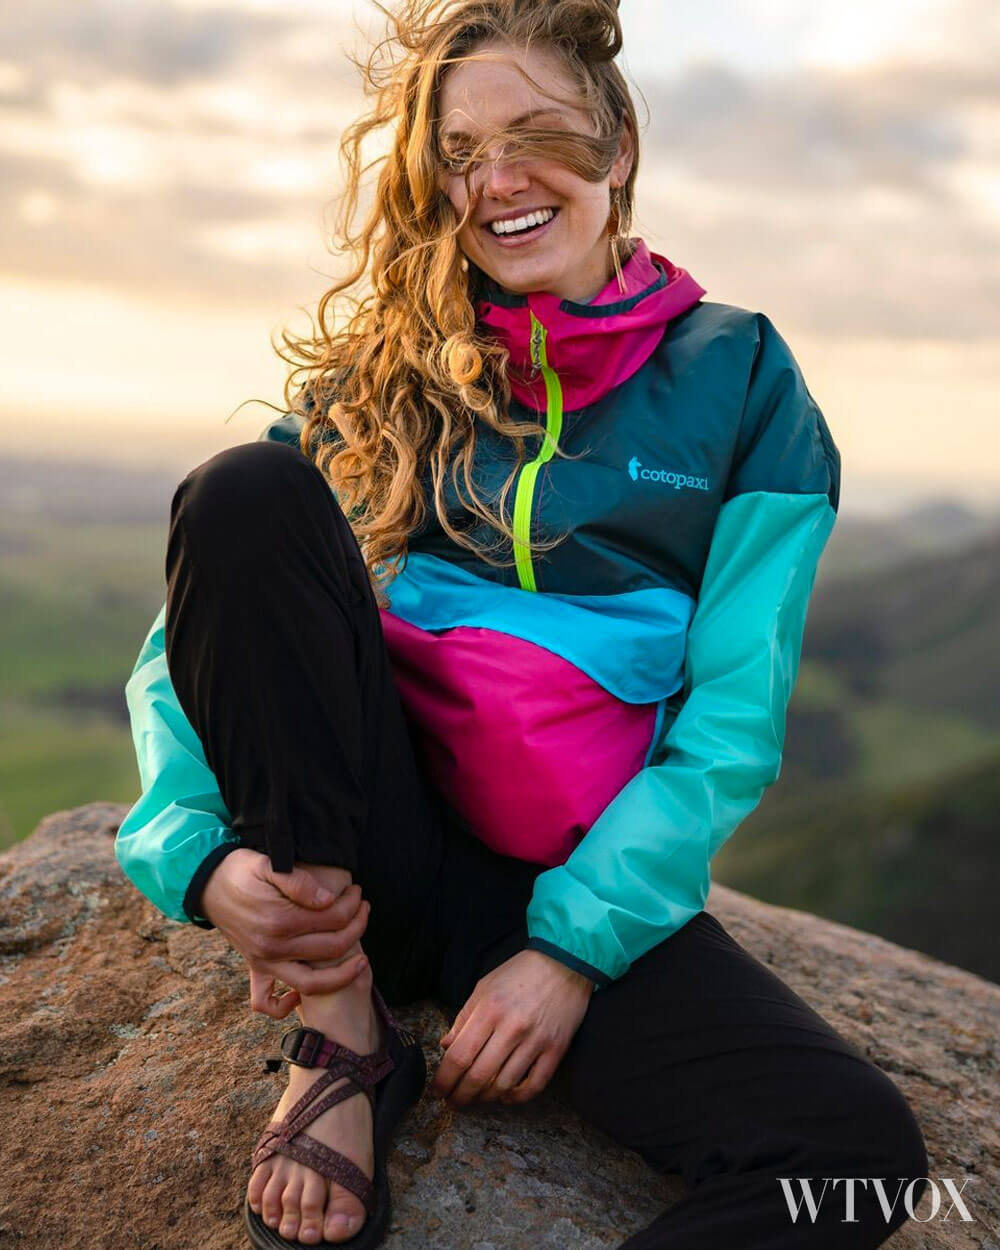 Cotopaxi Outdoor clothing brand